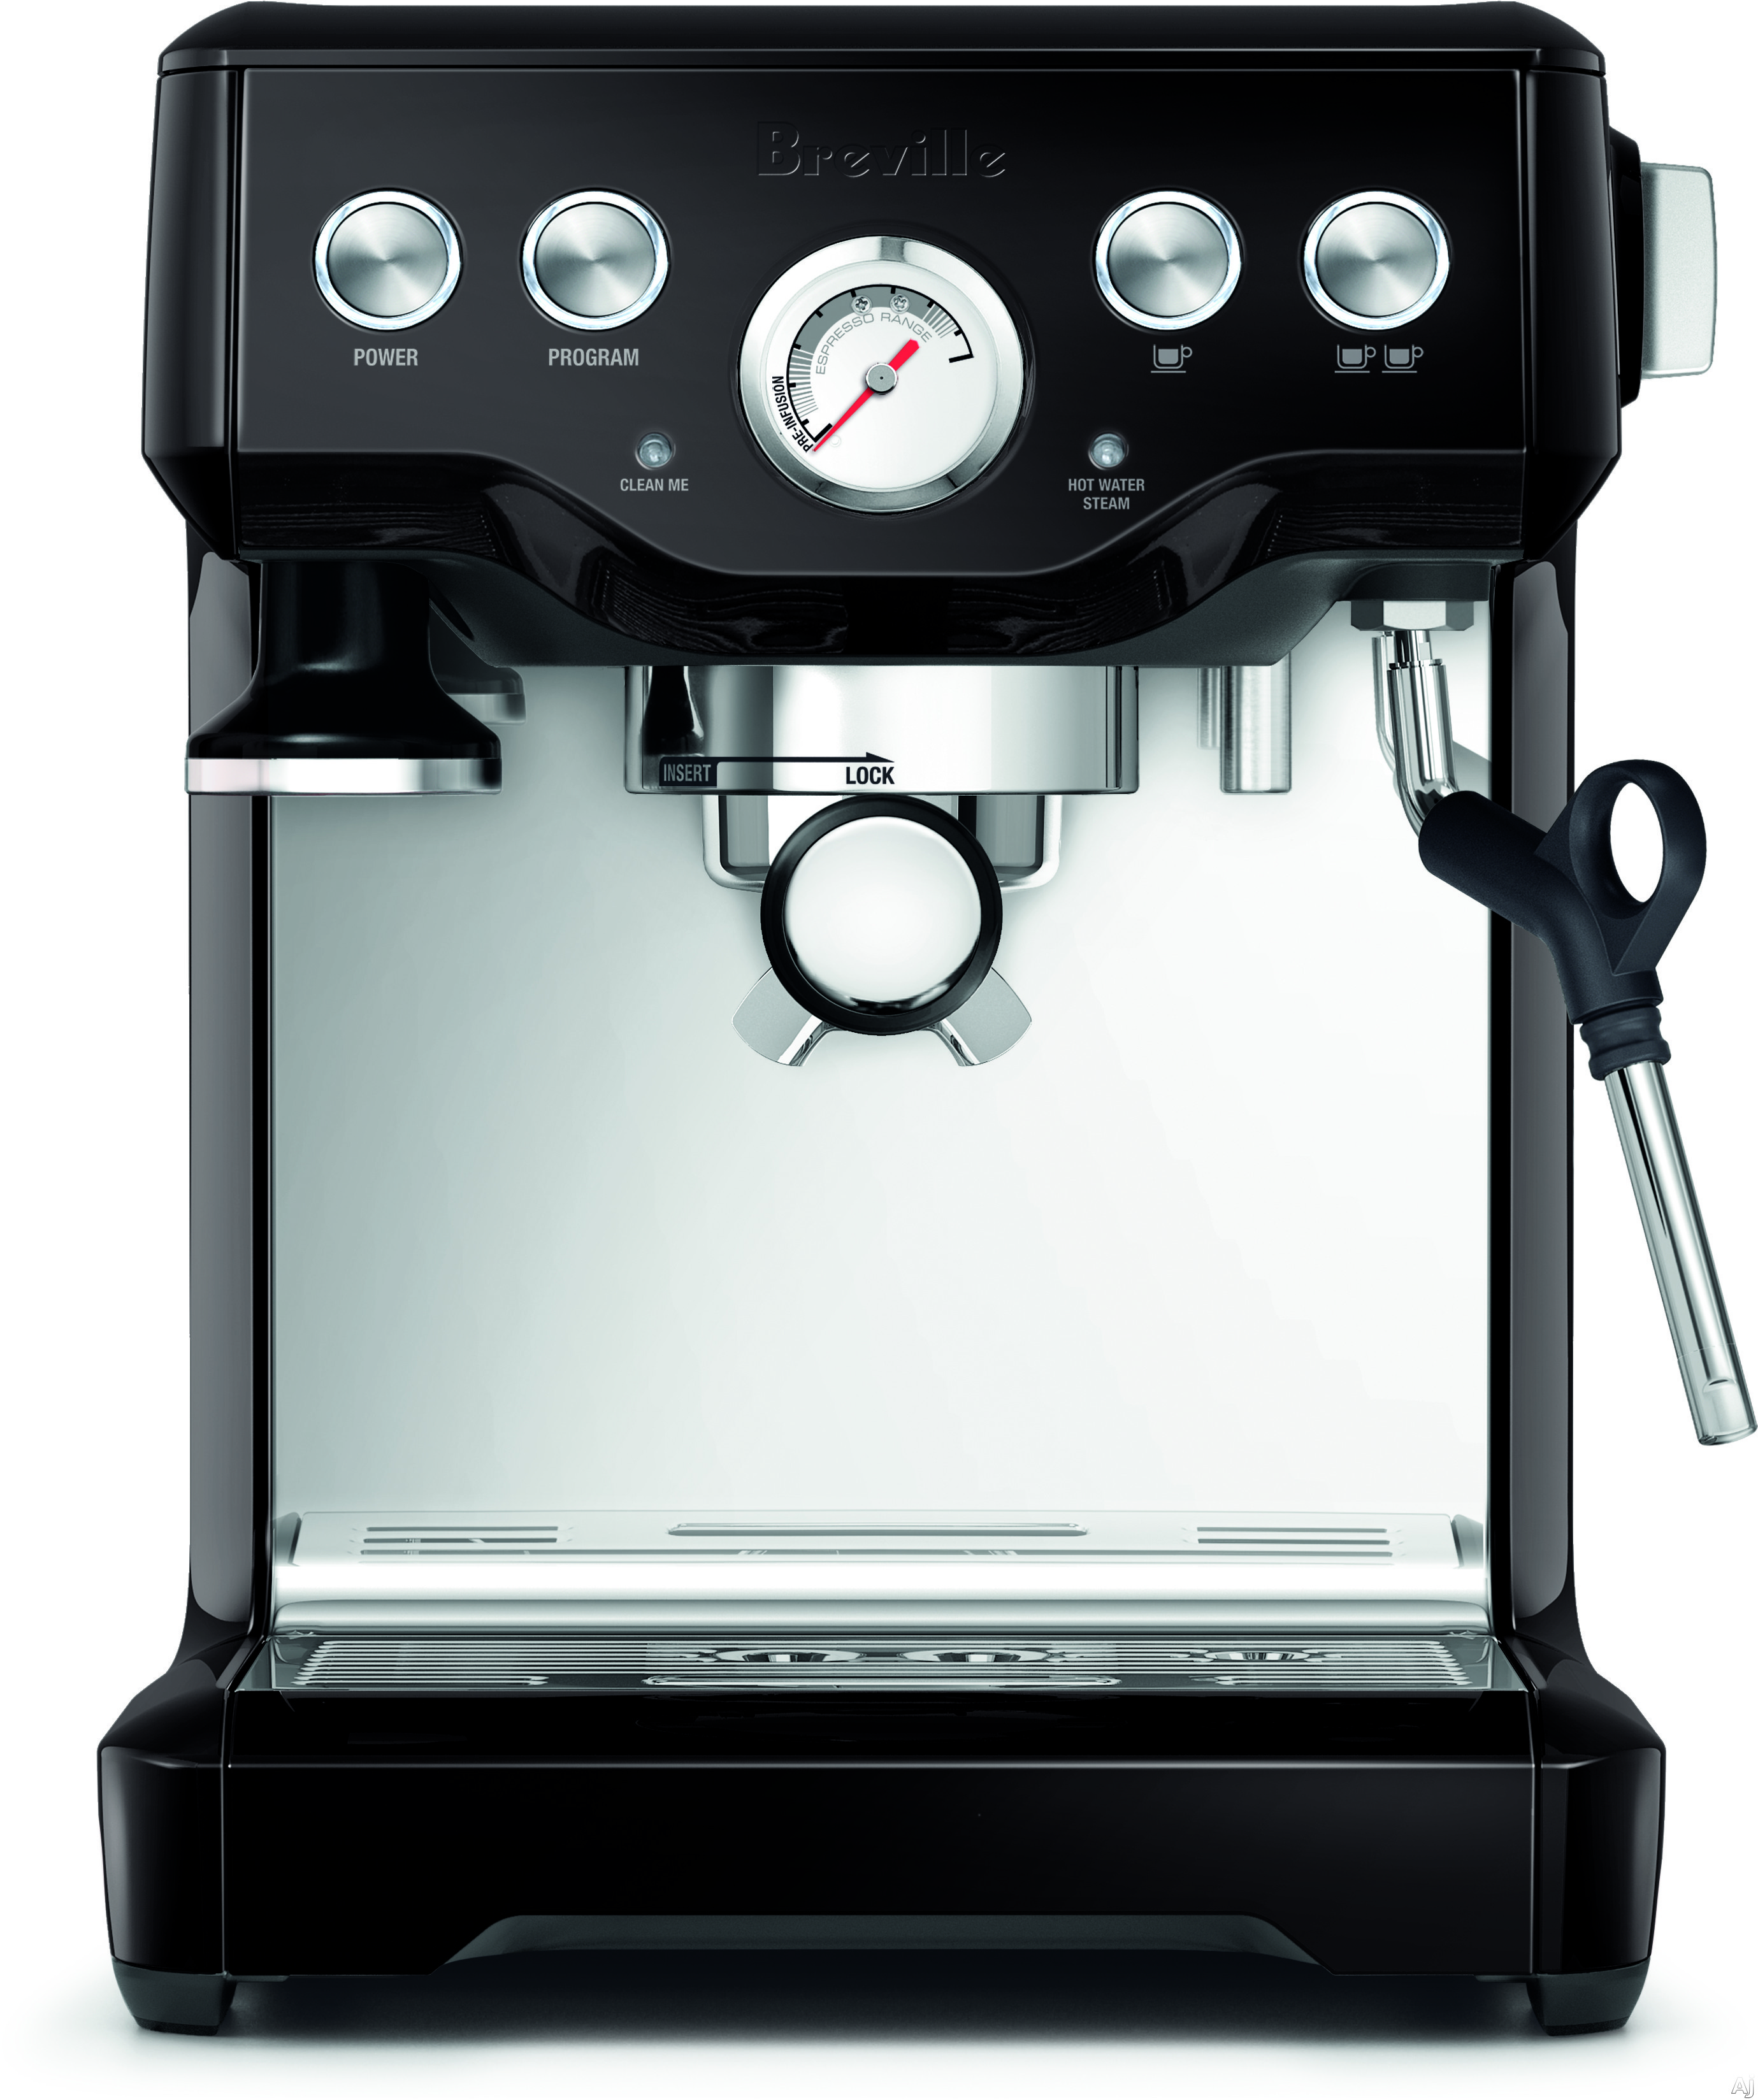 """Breville BES840BSXL Infuserâ""""¢ Espresso Machine with Electronic PID Control, High Power Thermocoil, Programmable Shot Volume, Pre-Infusion Function, Dry Puck Feature, Auto-Purge, Auto-Off, 15 Bar Pump, Removable Drip Tray, Breville Assistâ""""¢ Plug and Acc"""